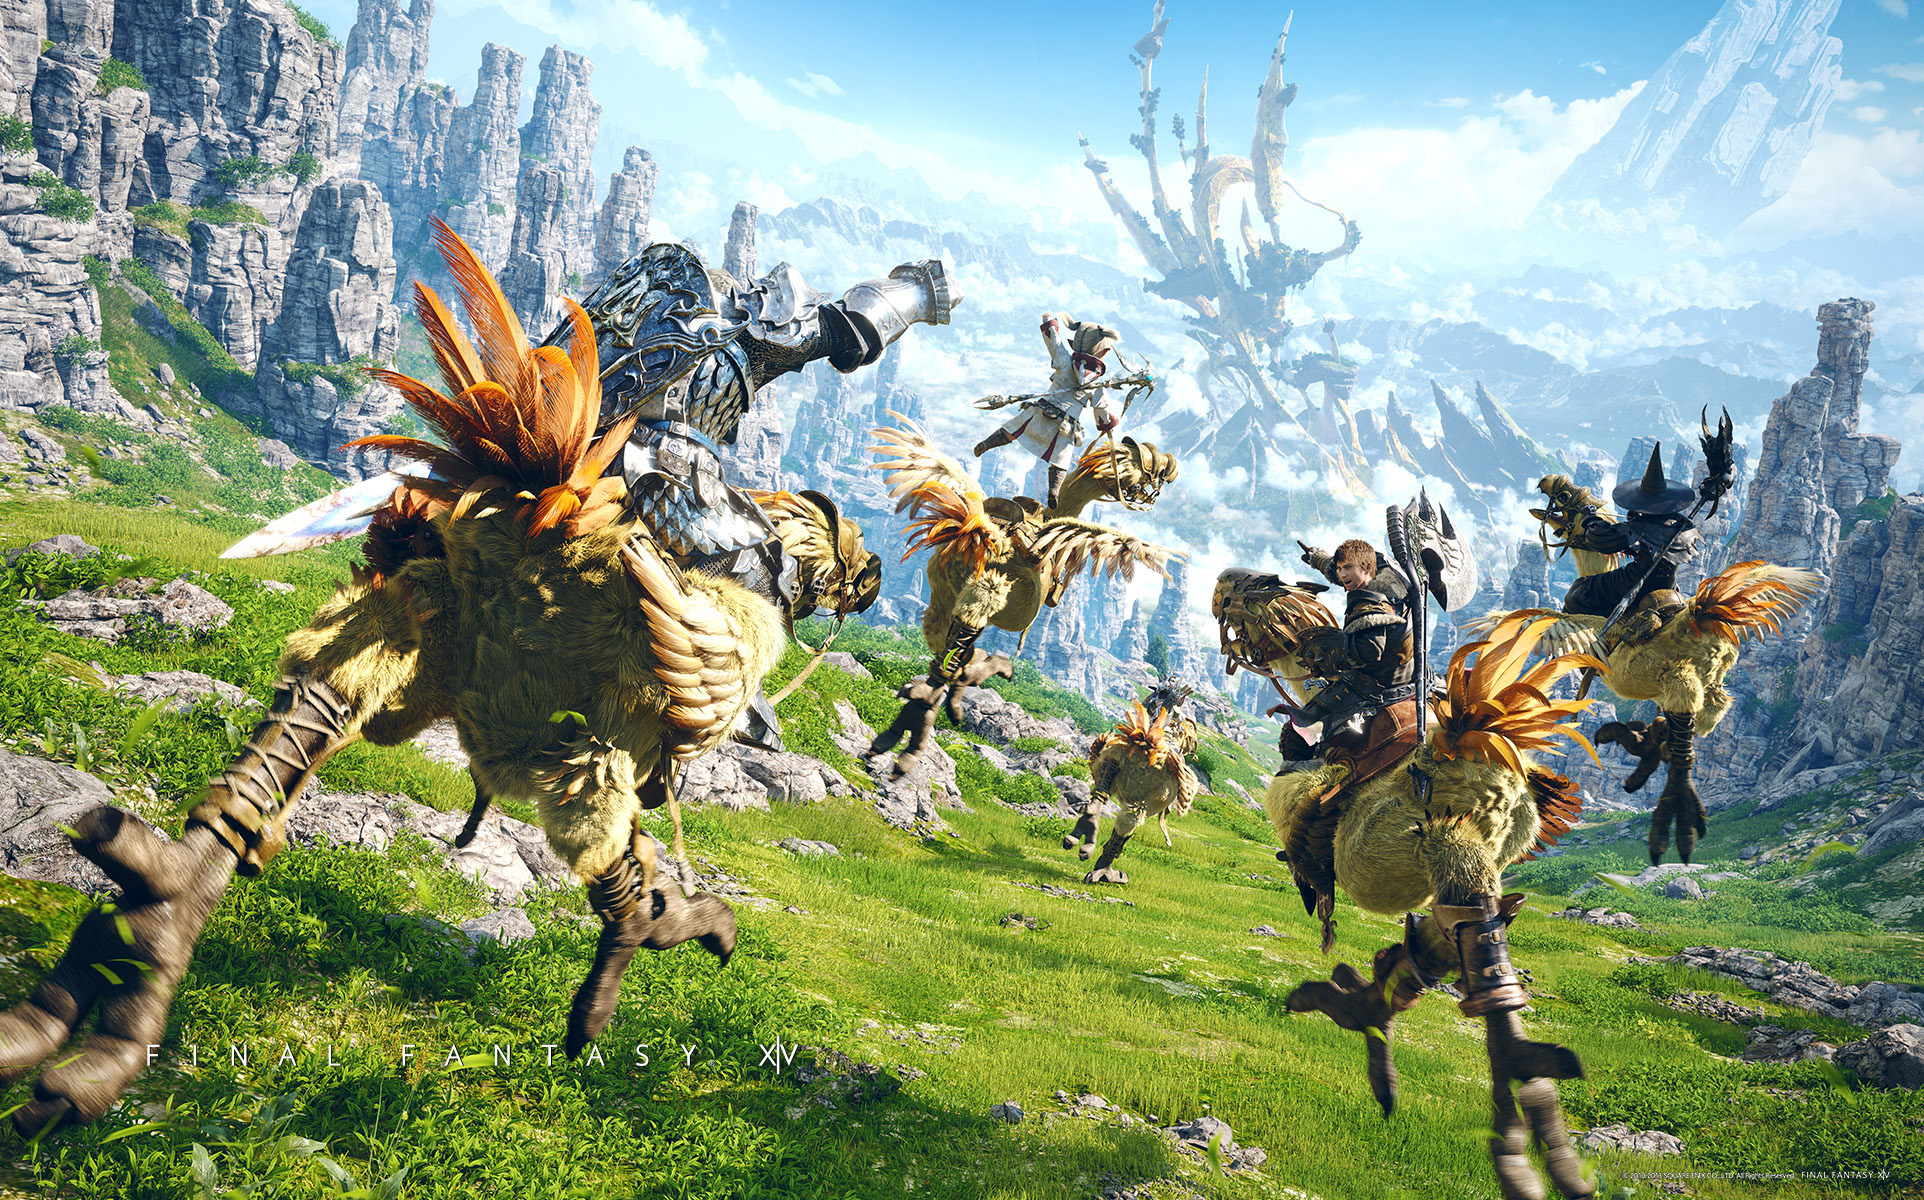 Final Fantasy 14: PS5 version announced, date for Open Beta